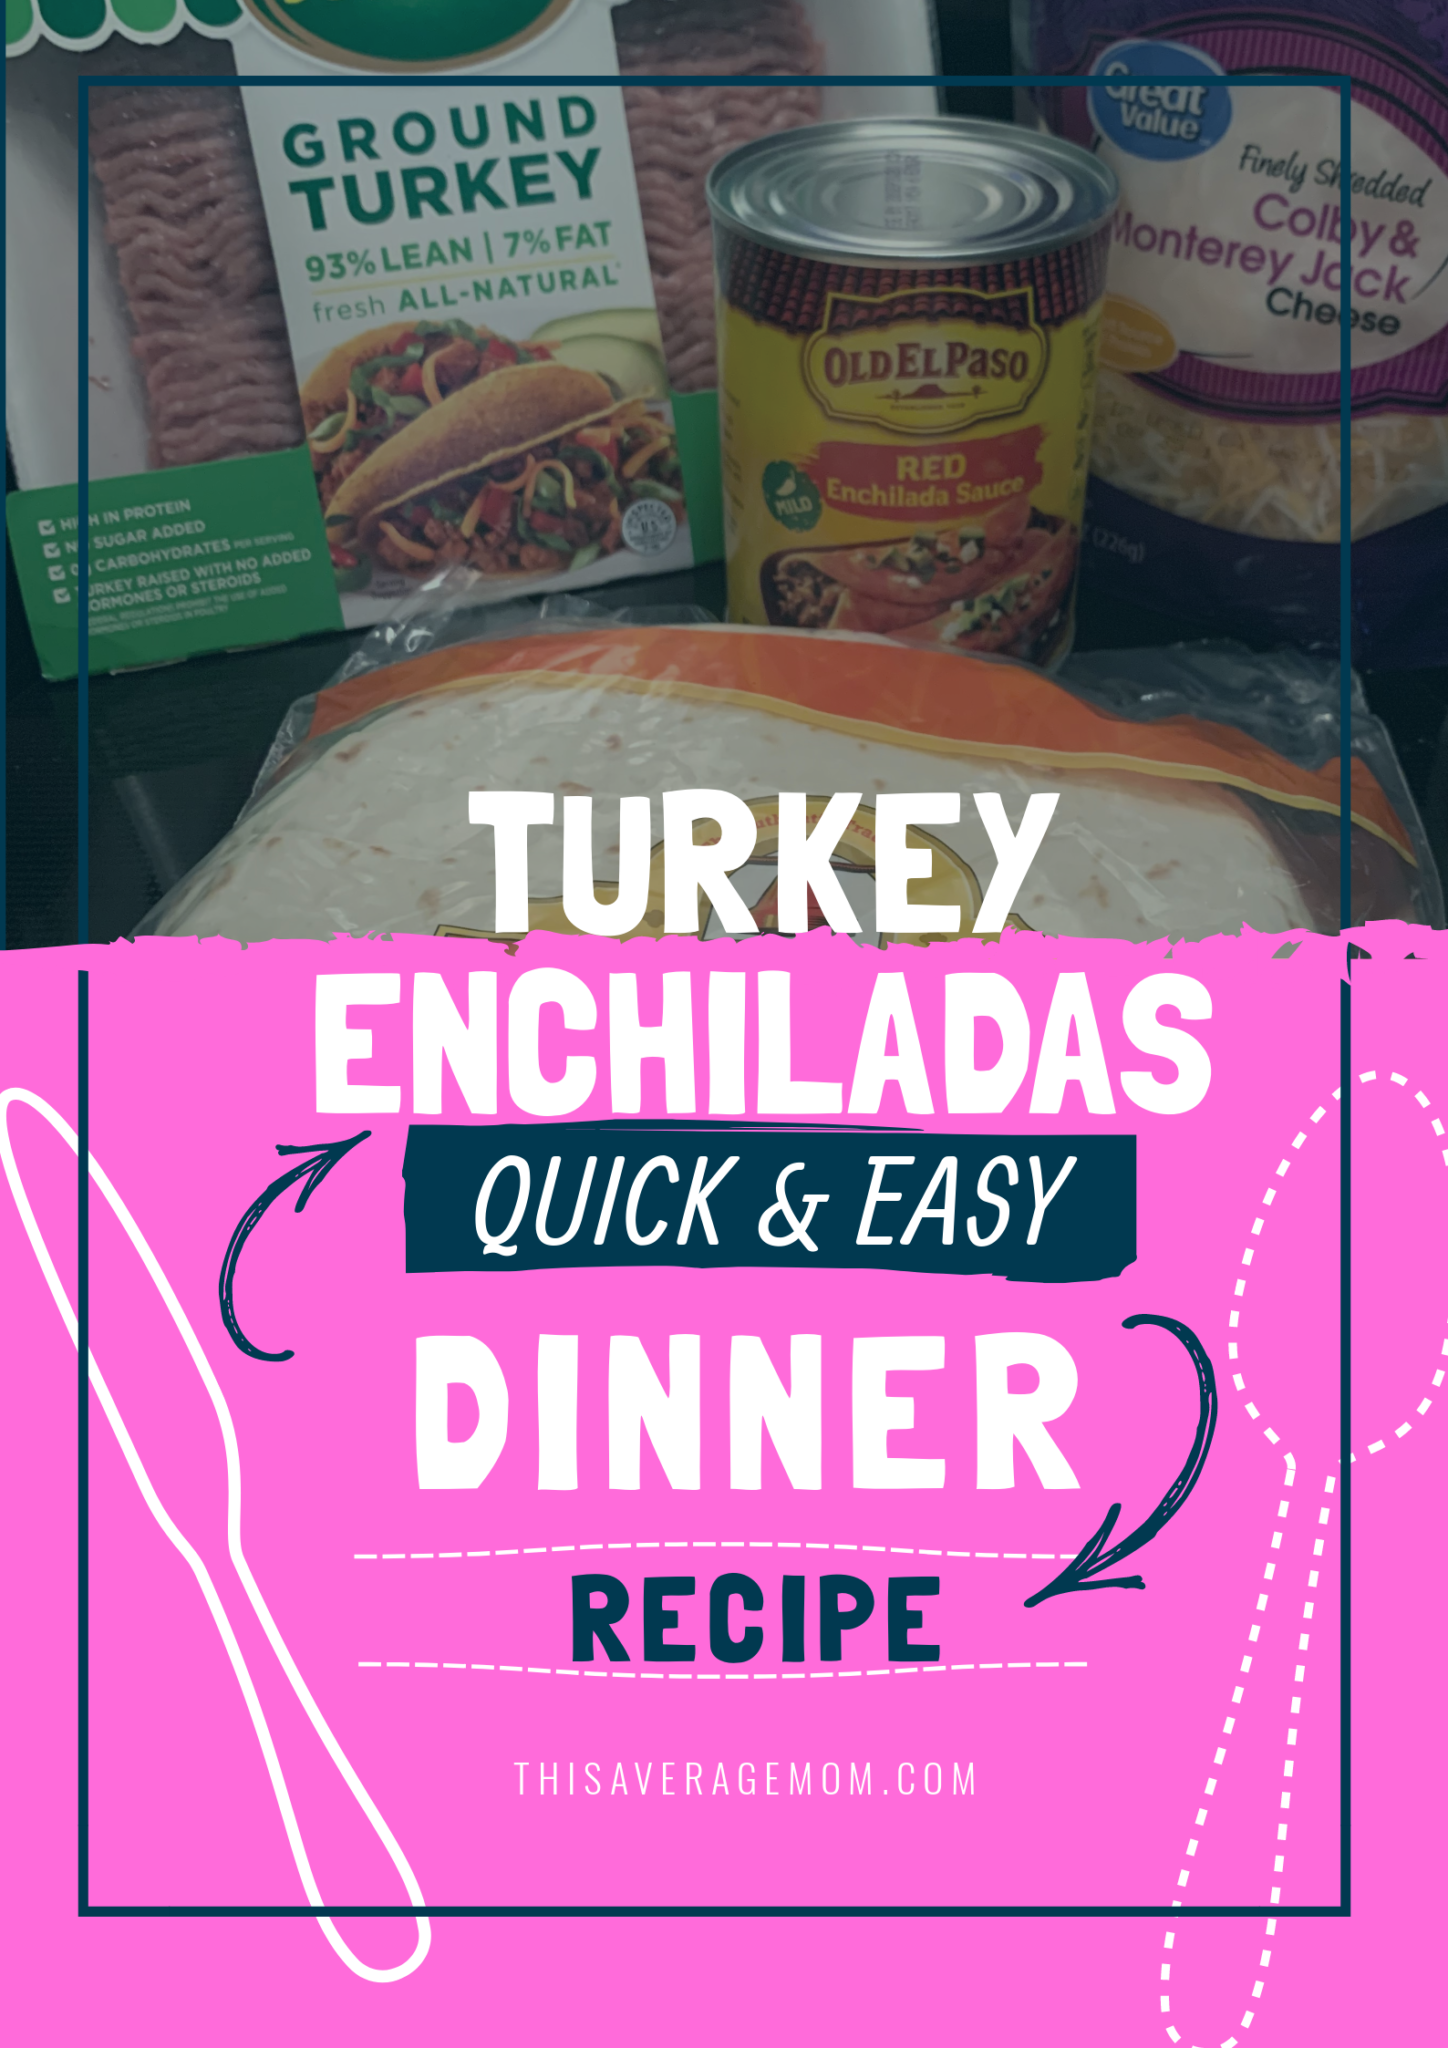 Need an easy dinner idea? Try this turkey enchilada recipe! Perfect for busy weeknights or laid back weekends, these enchiladas are quick, easy and tasty.